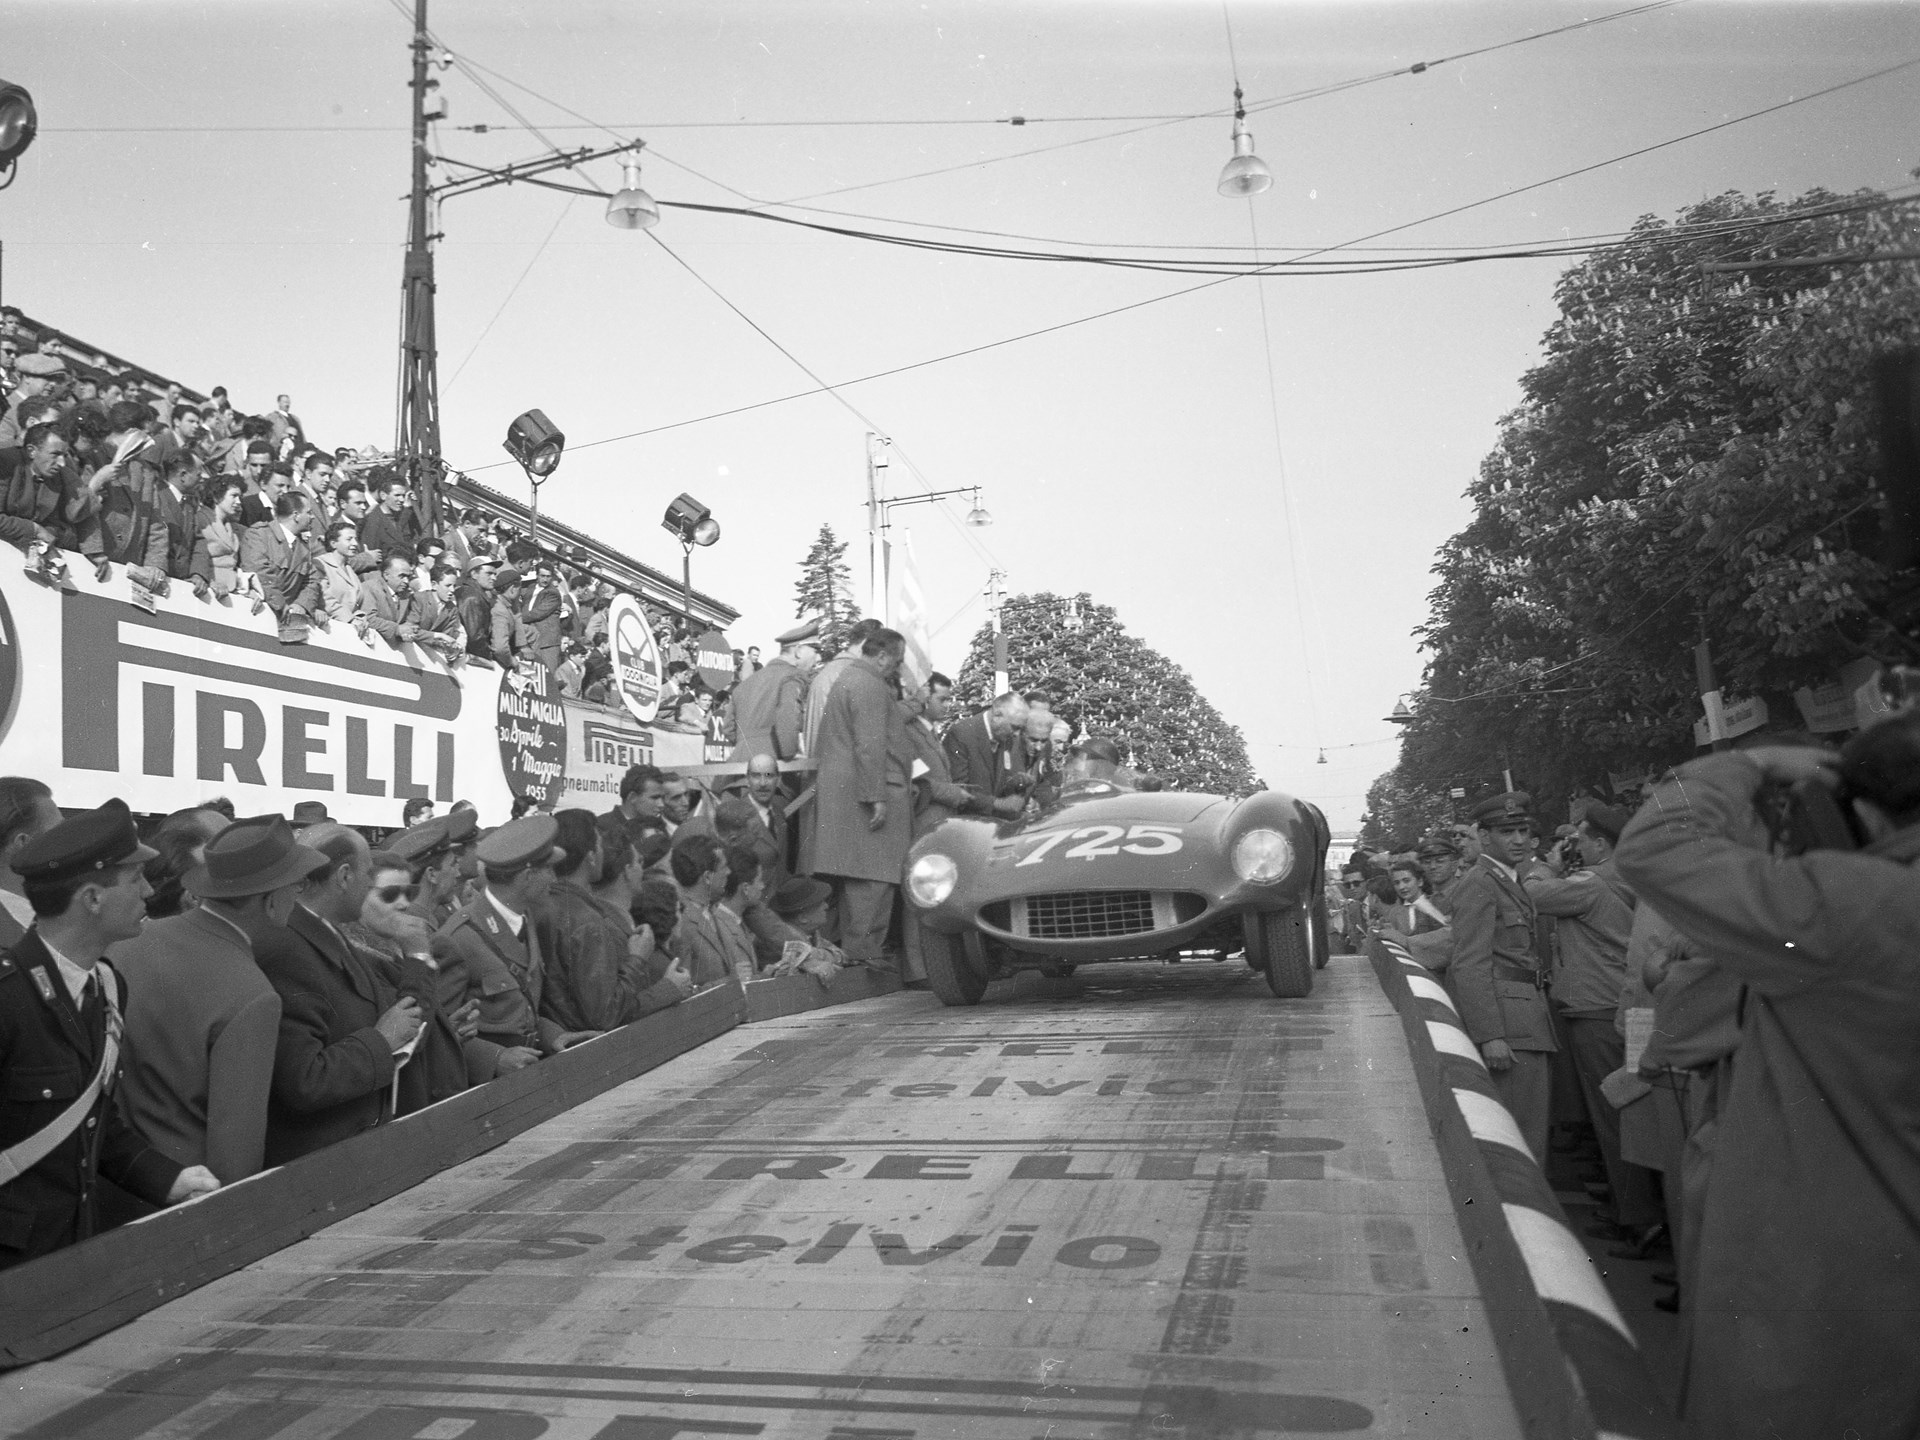 Paolo Marzotto and 0546 LM on  the starting ramp of the 1955 Mille Miglia.